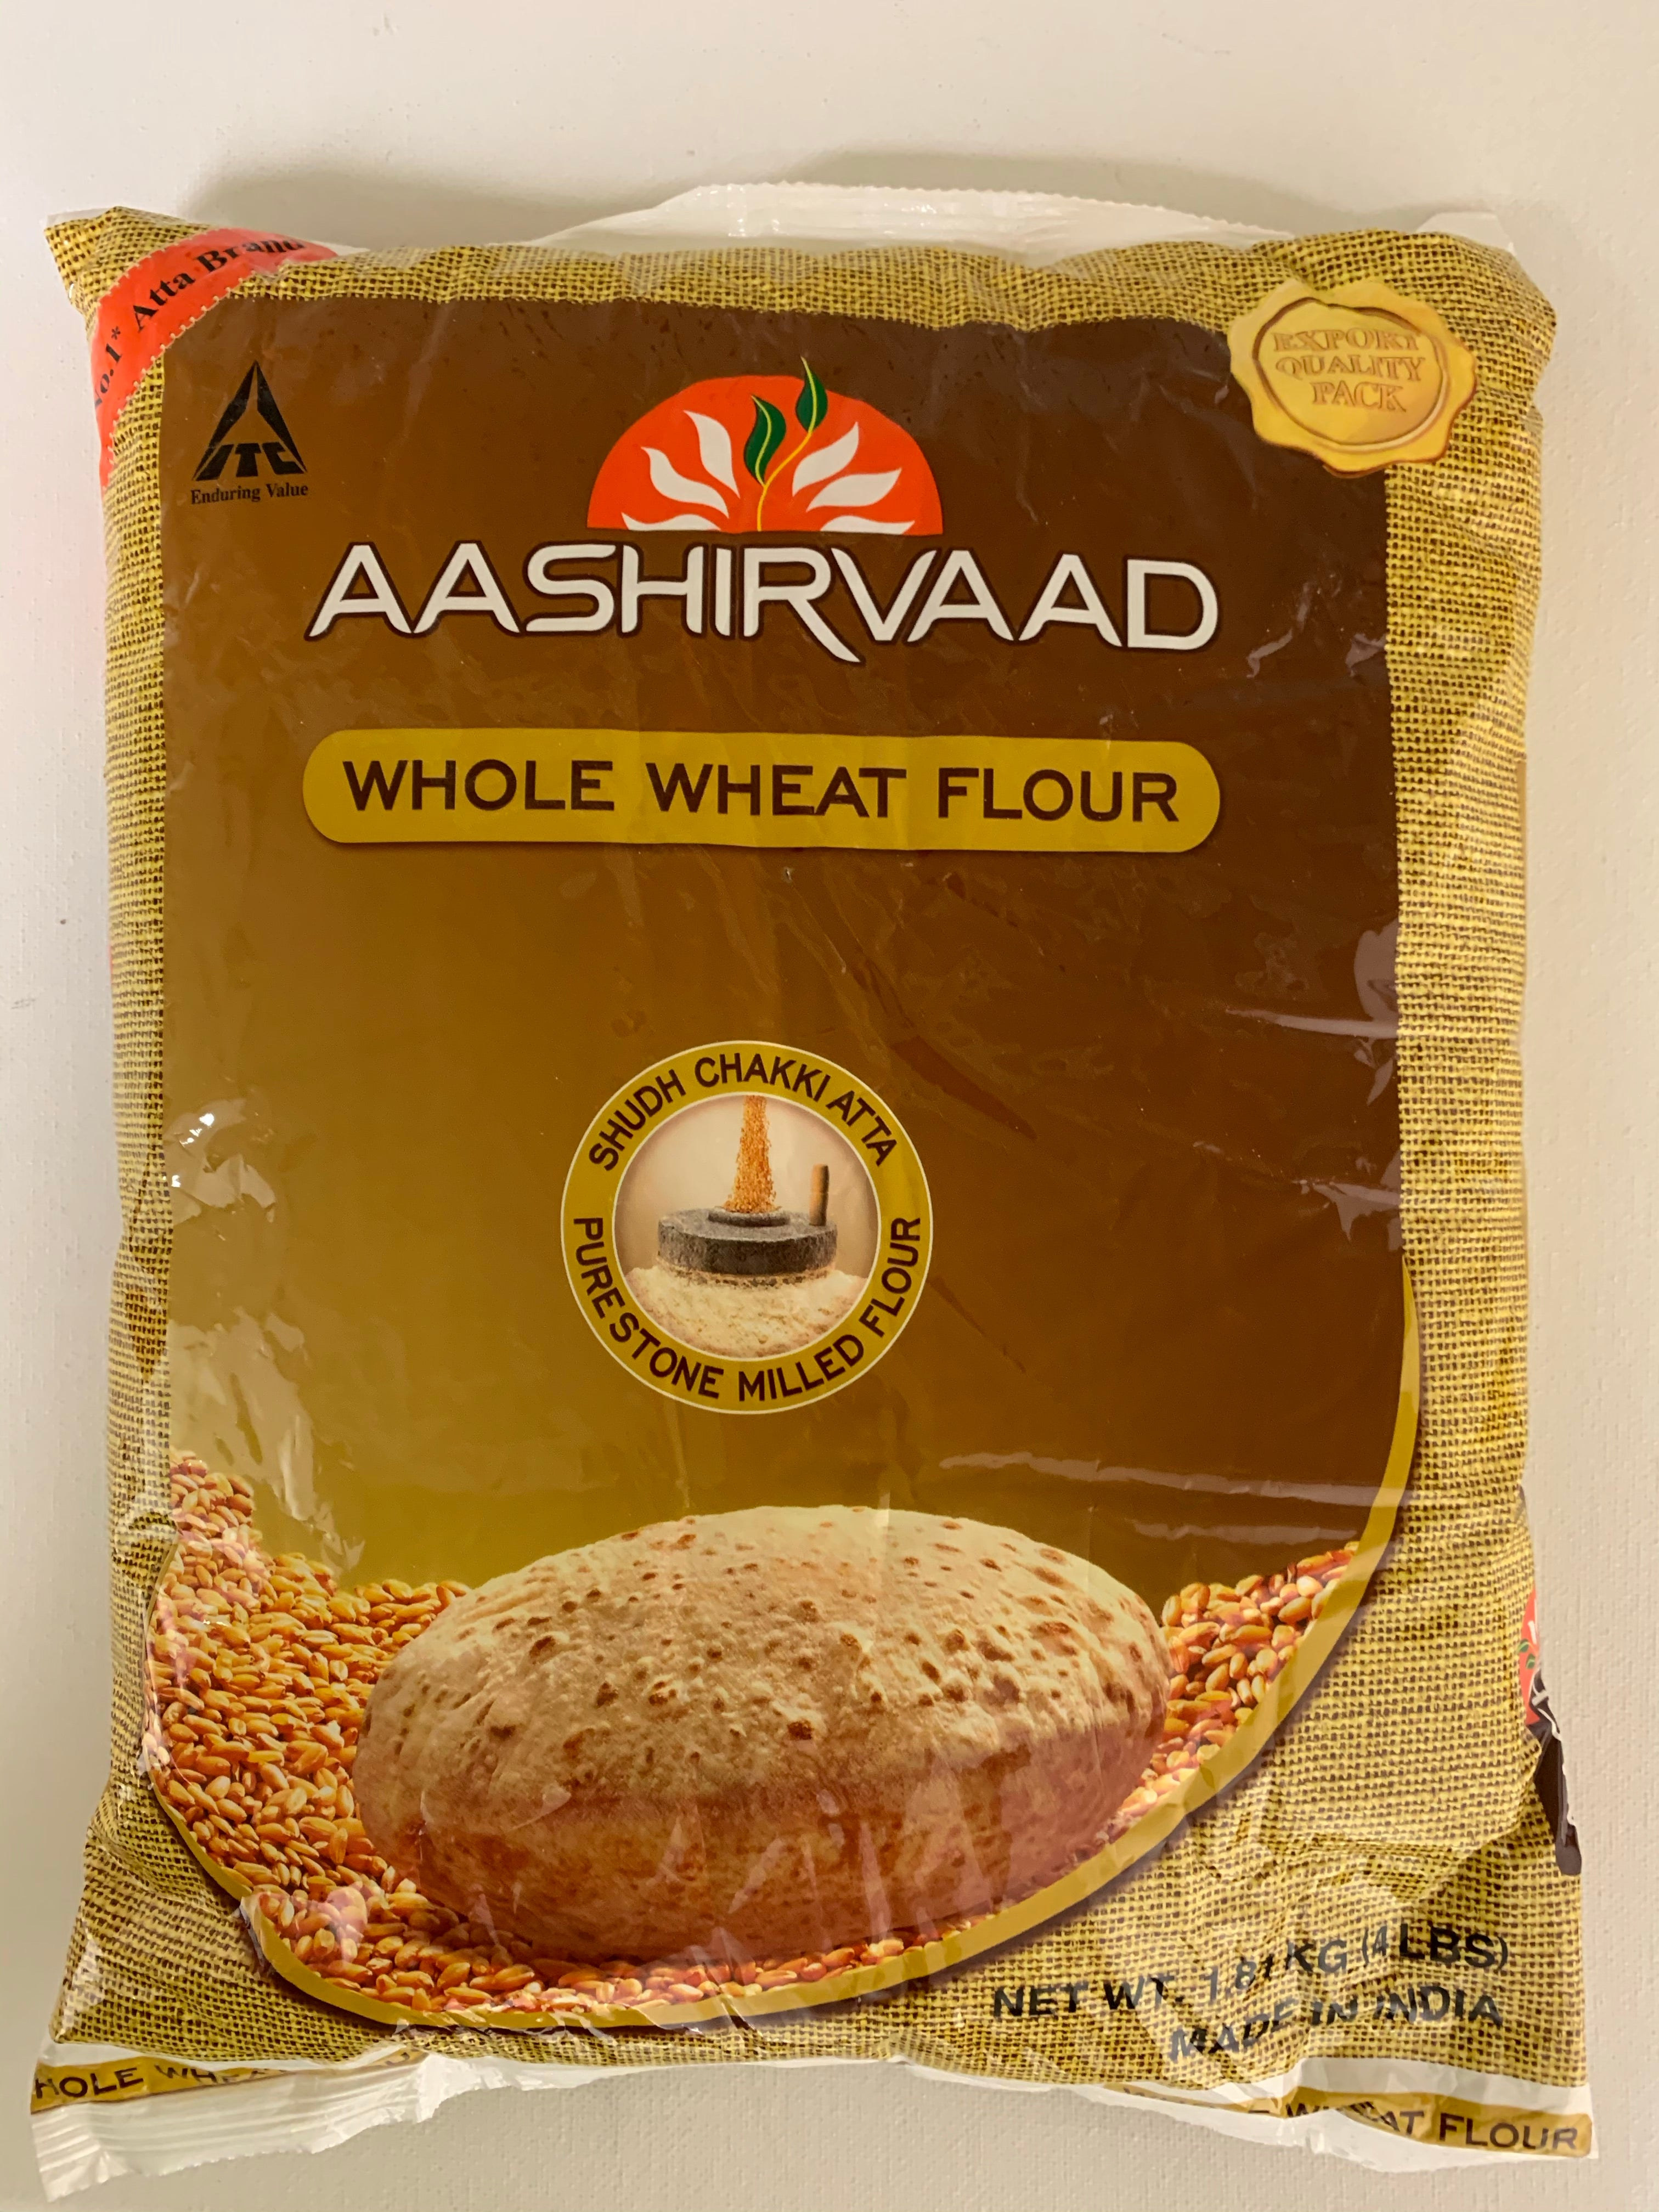 Aashirvaad Whole Wheat Flour / Atta (4 lb)